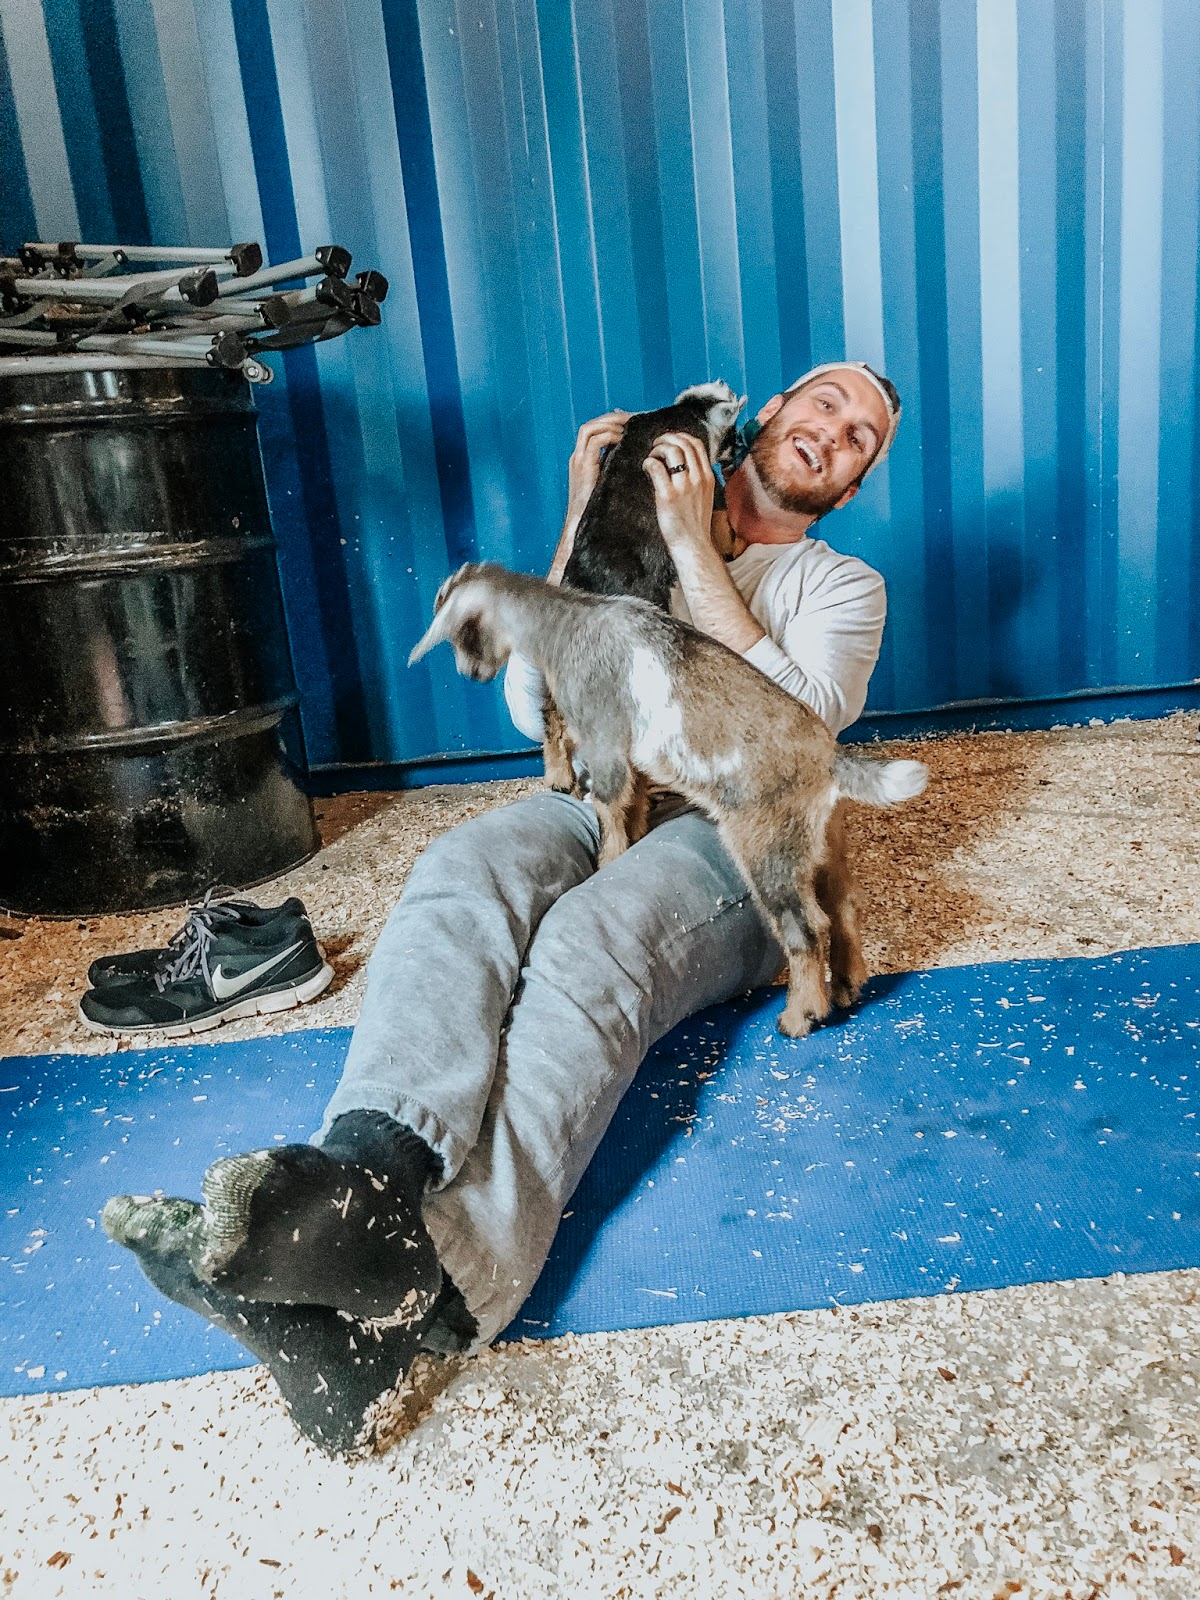 Tampa blogger's husband at Grady Goat Farm in Tampa, Florida taking a goat yoga class